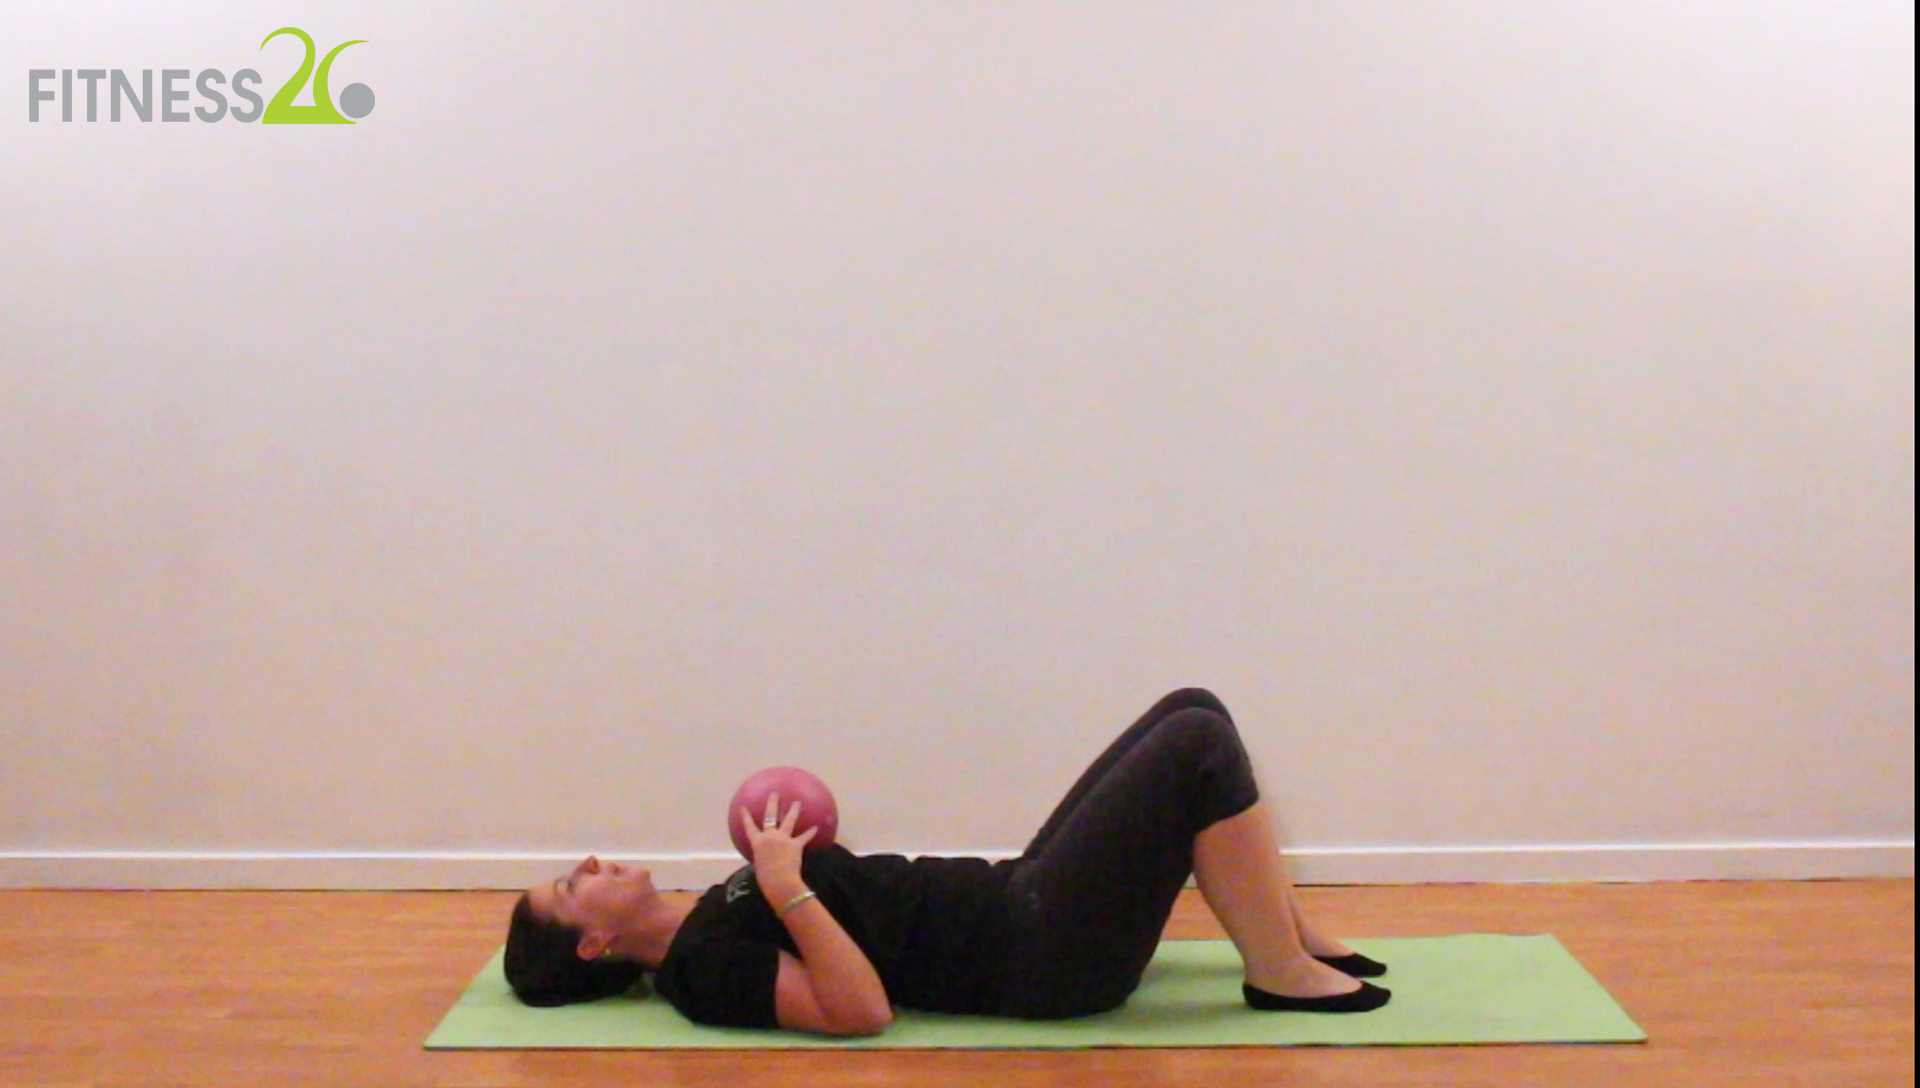 Megan – Basic Pilates Session using a Small ball